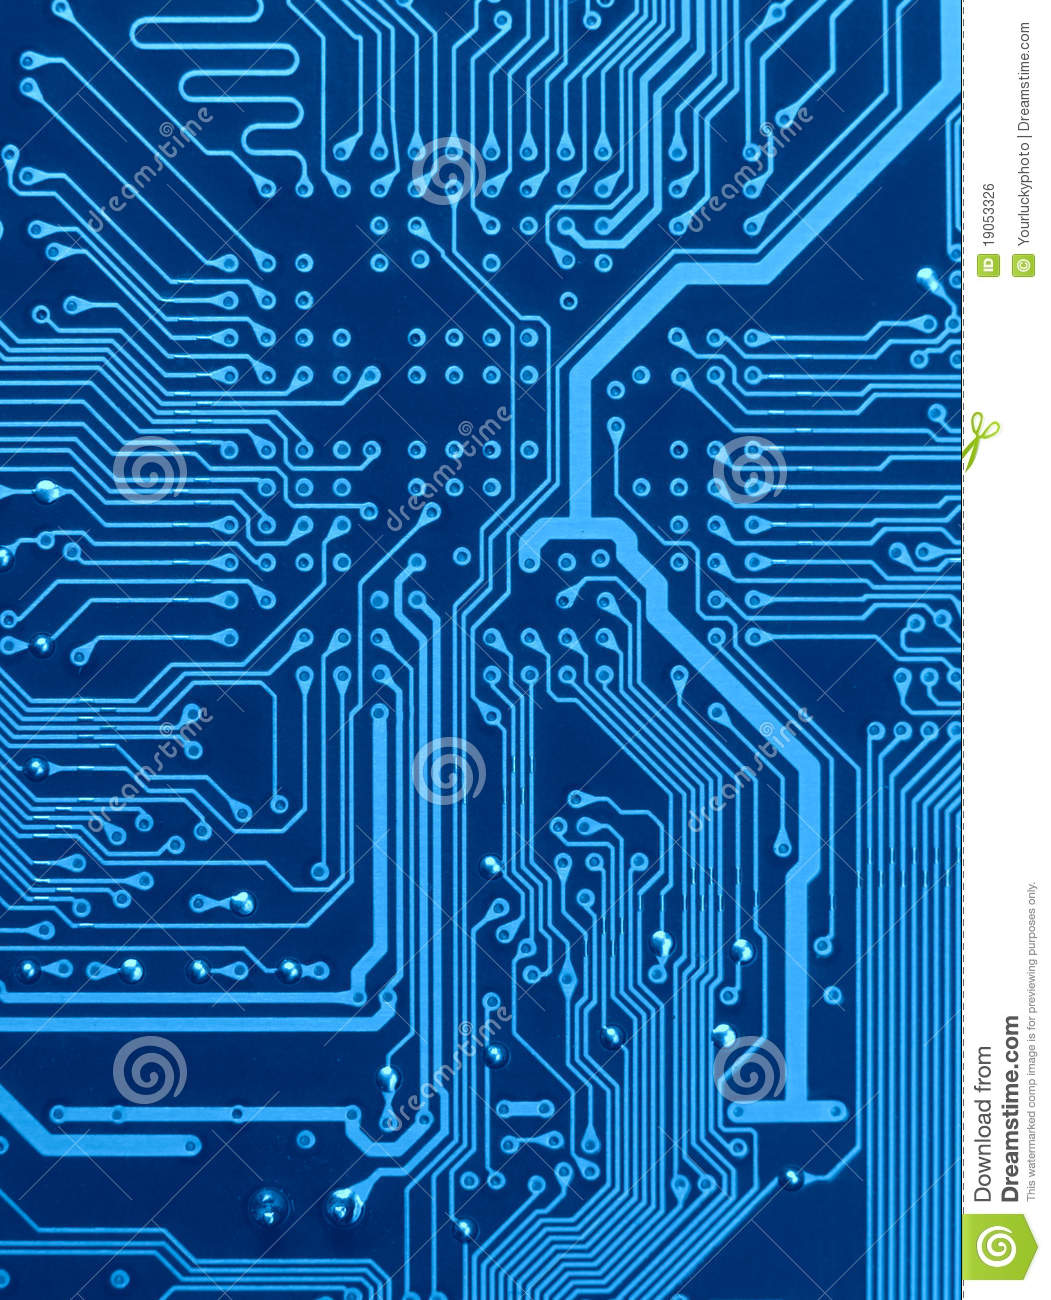 Scheme Of Circuit Board Royalty Free Stock Image - Image: 19053326